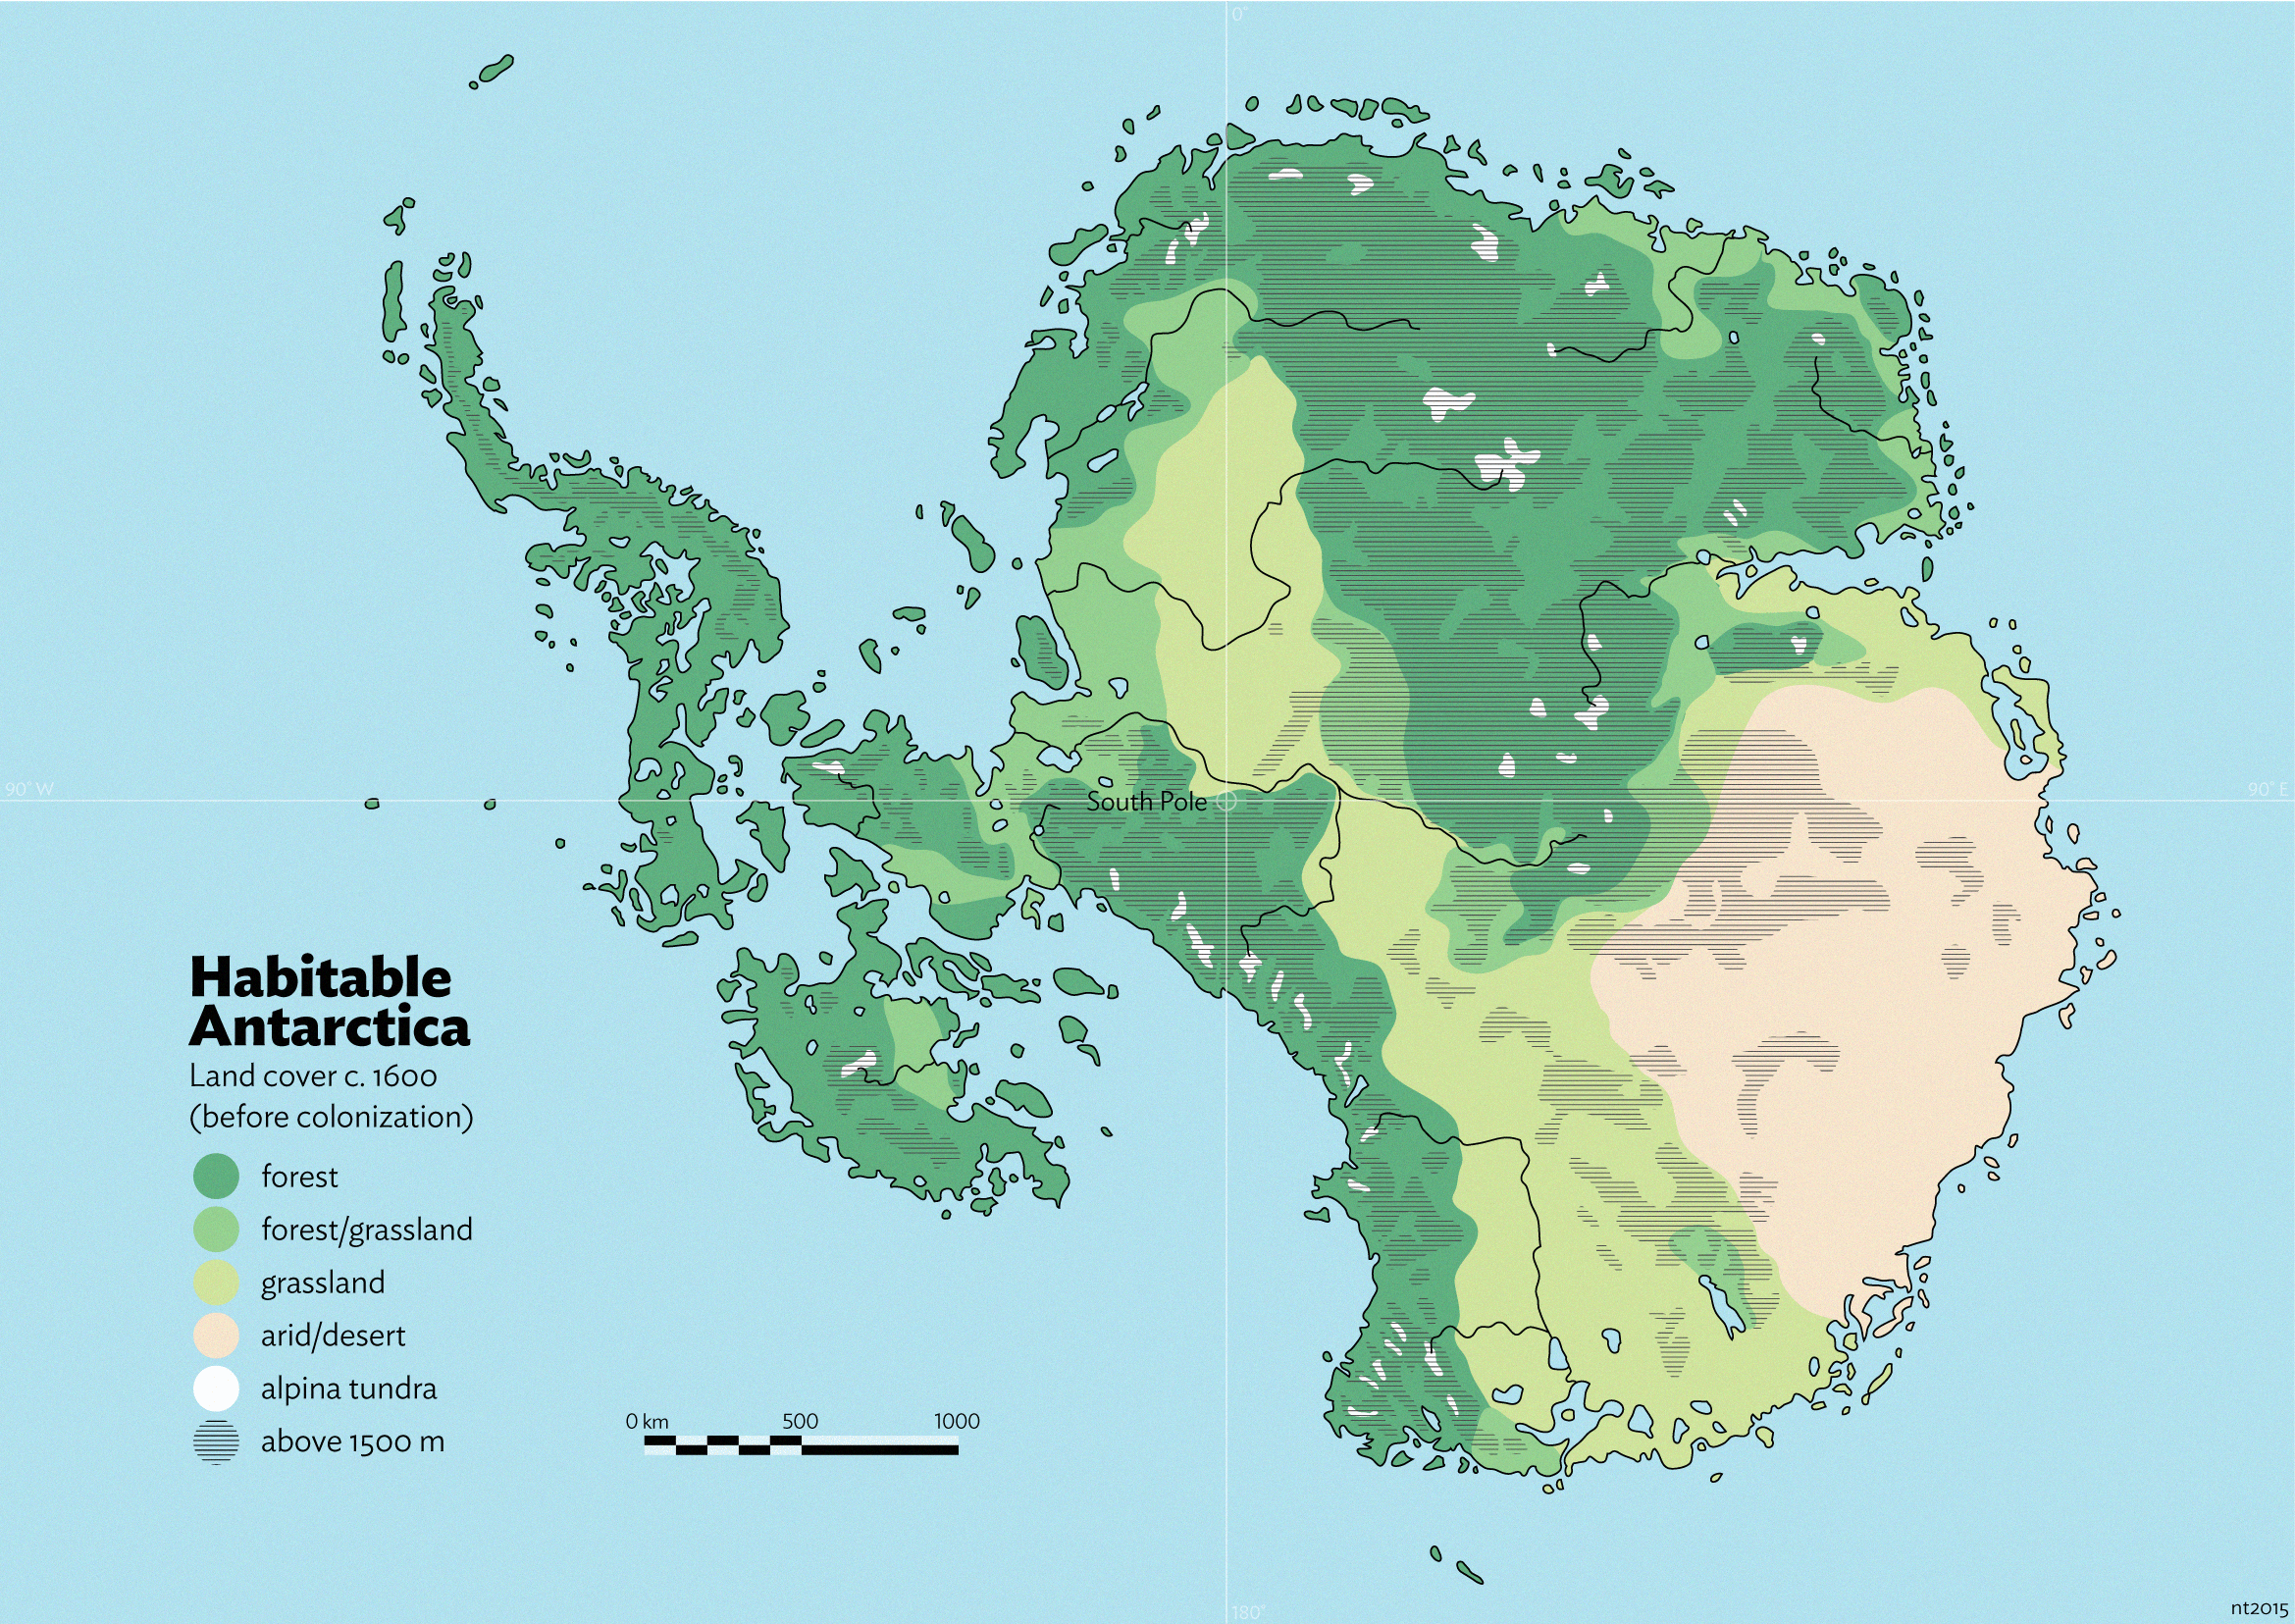 Habitable Antarctica: Pre-colonization land cover by schreibstang